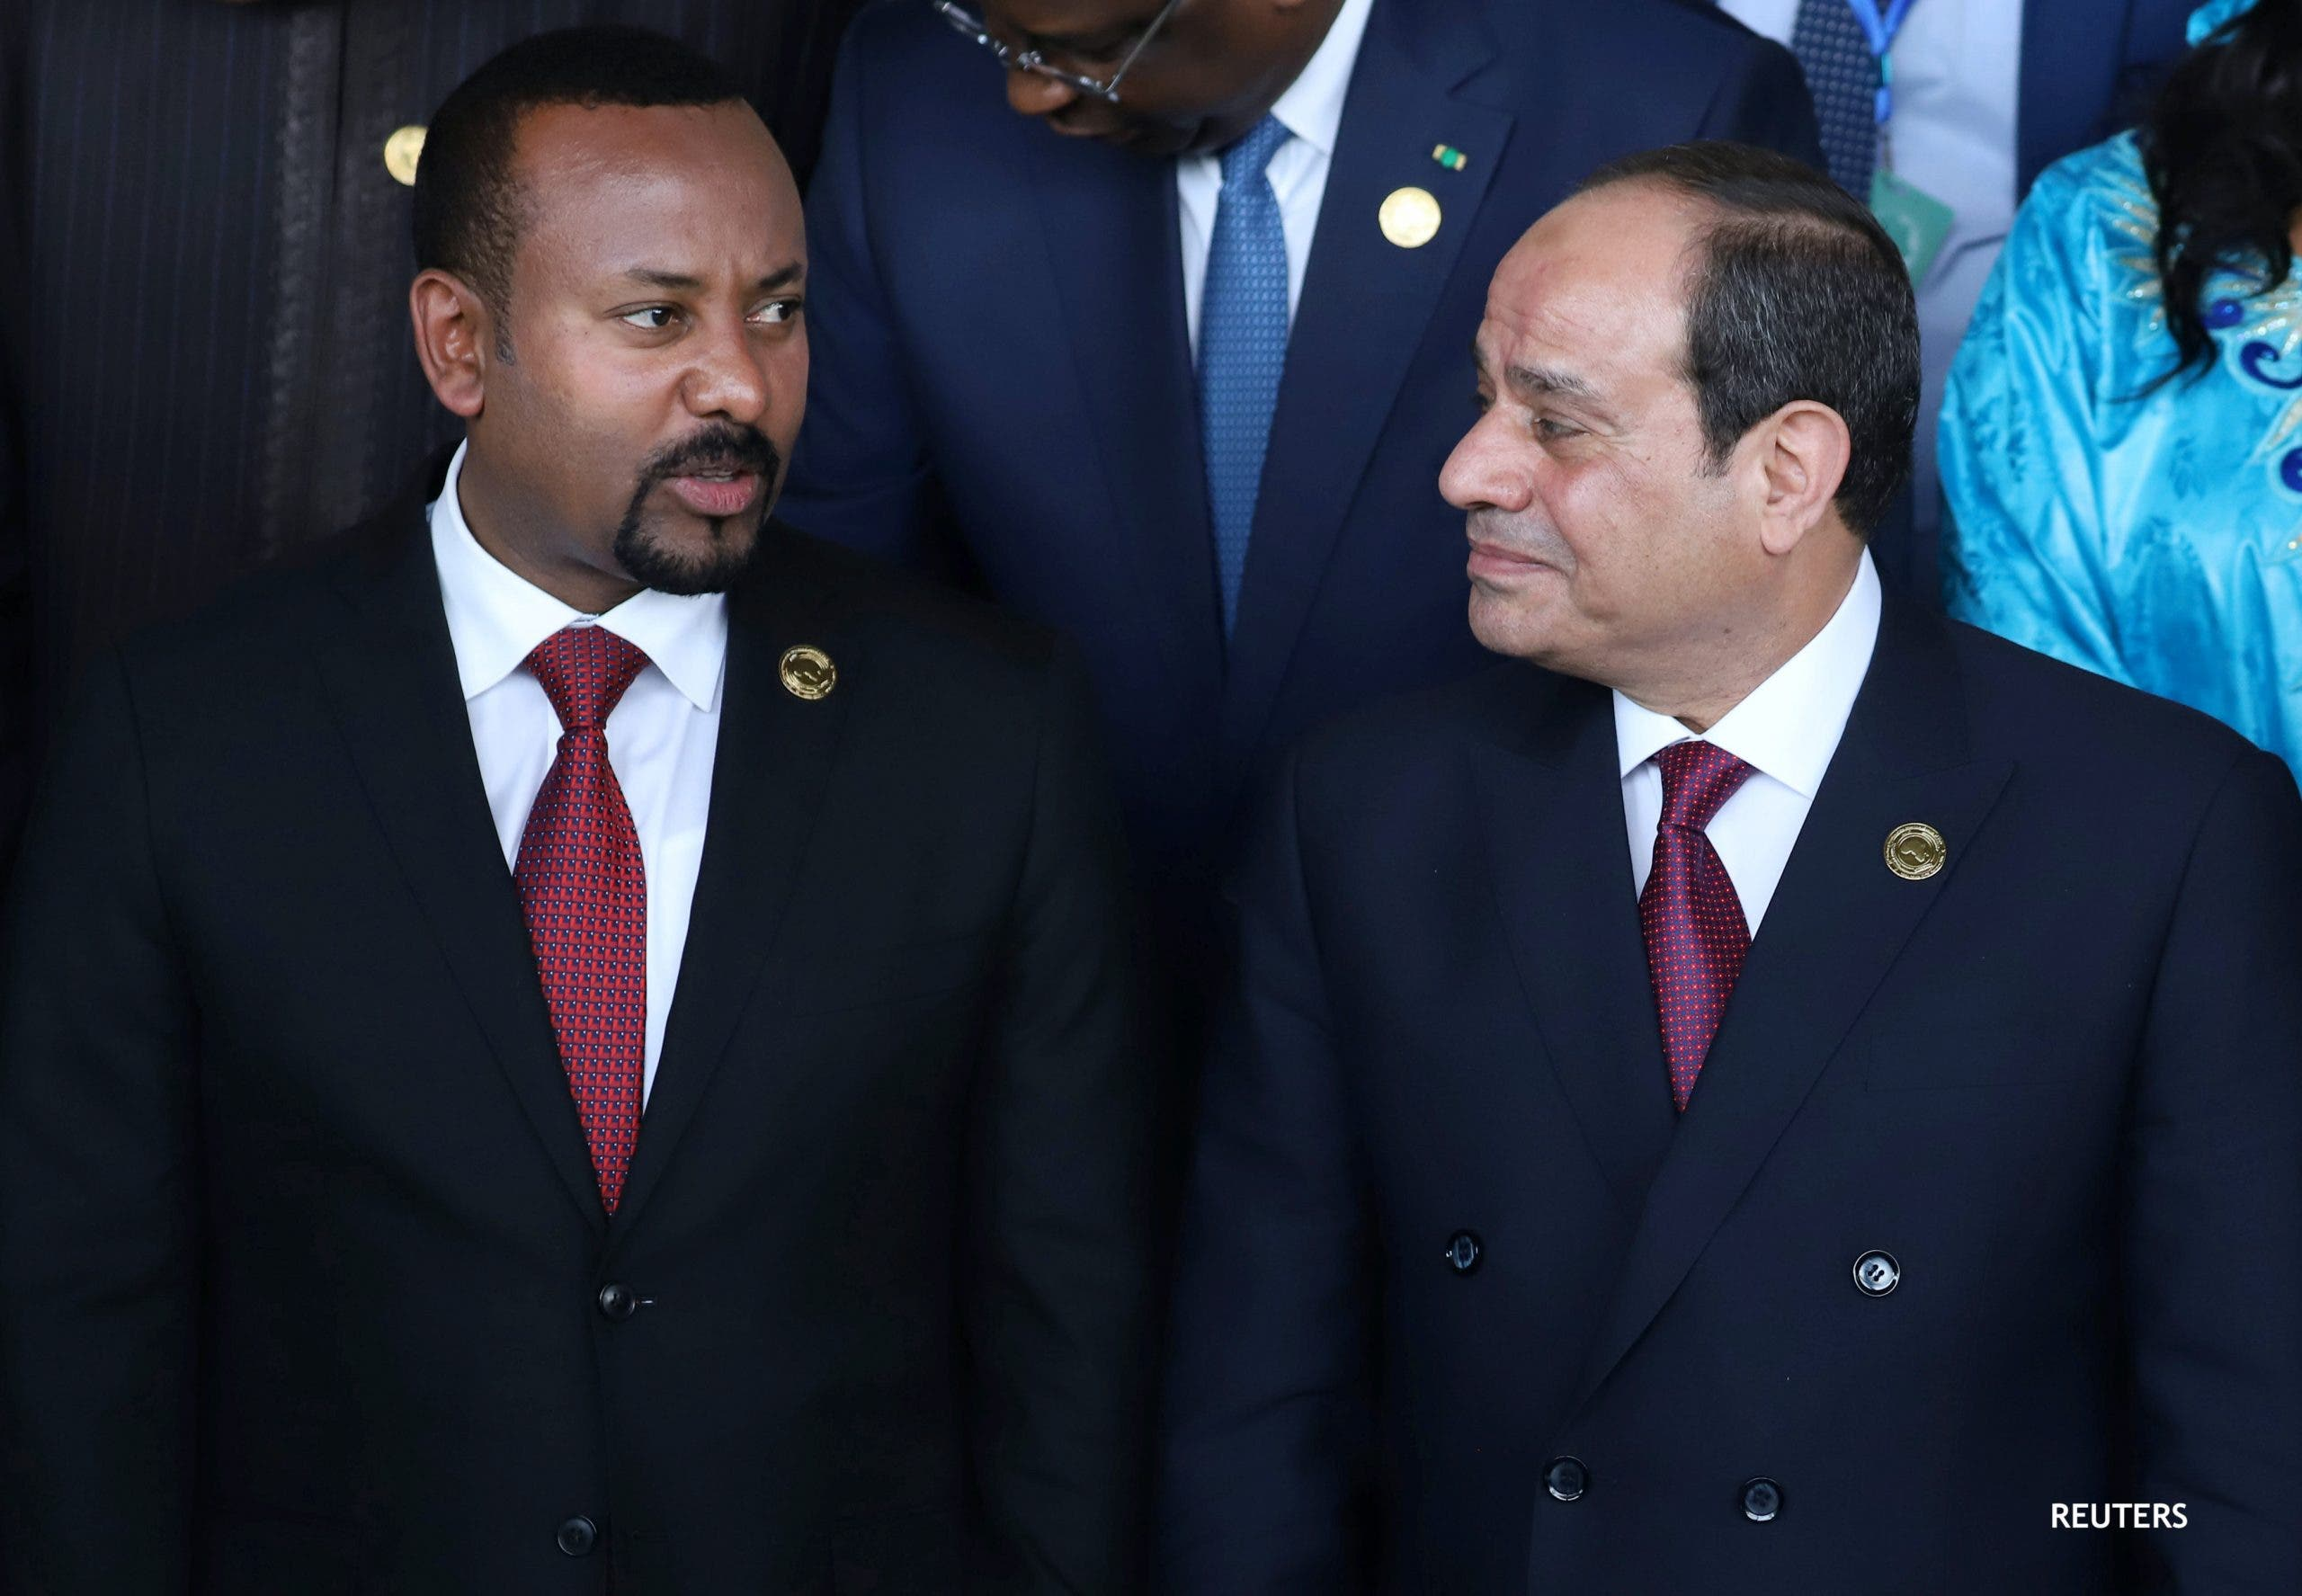 Egypt summons Ethiopia's envoy over comments – statement